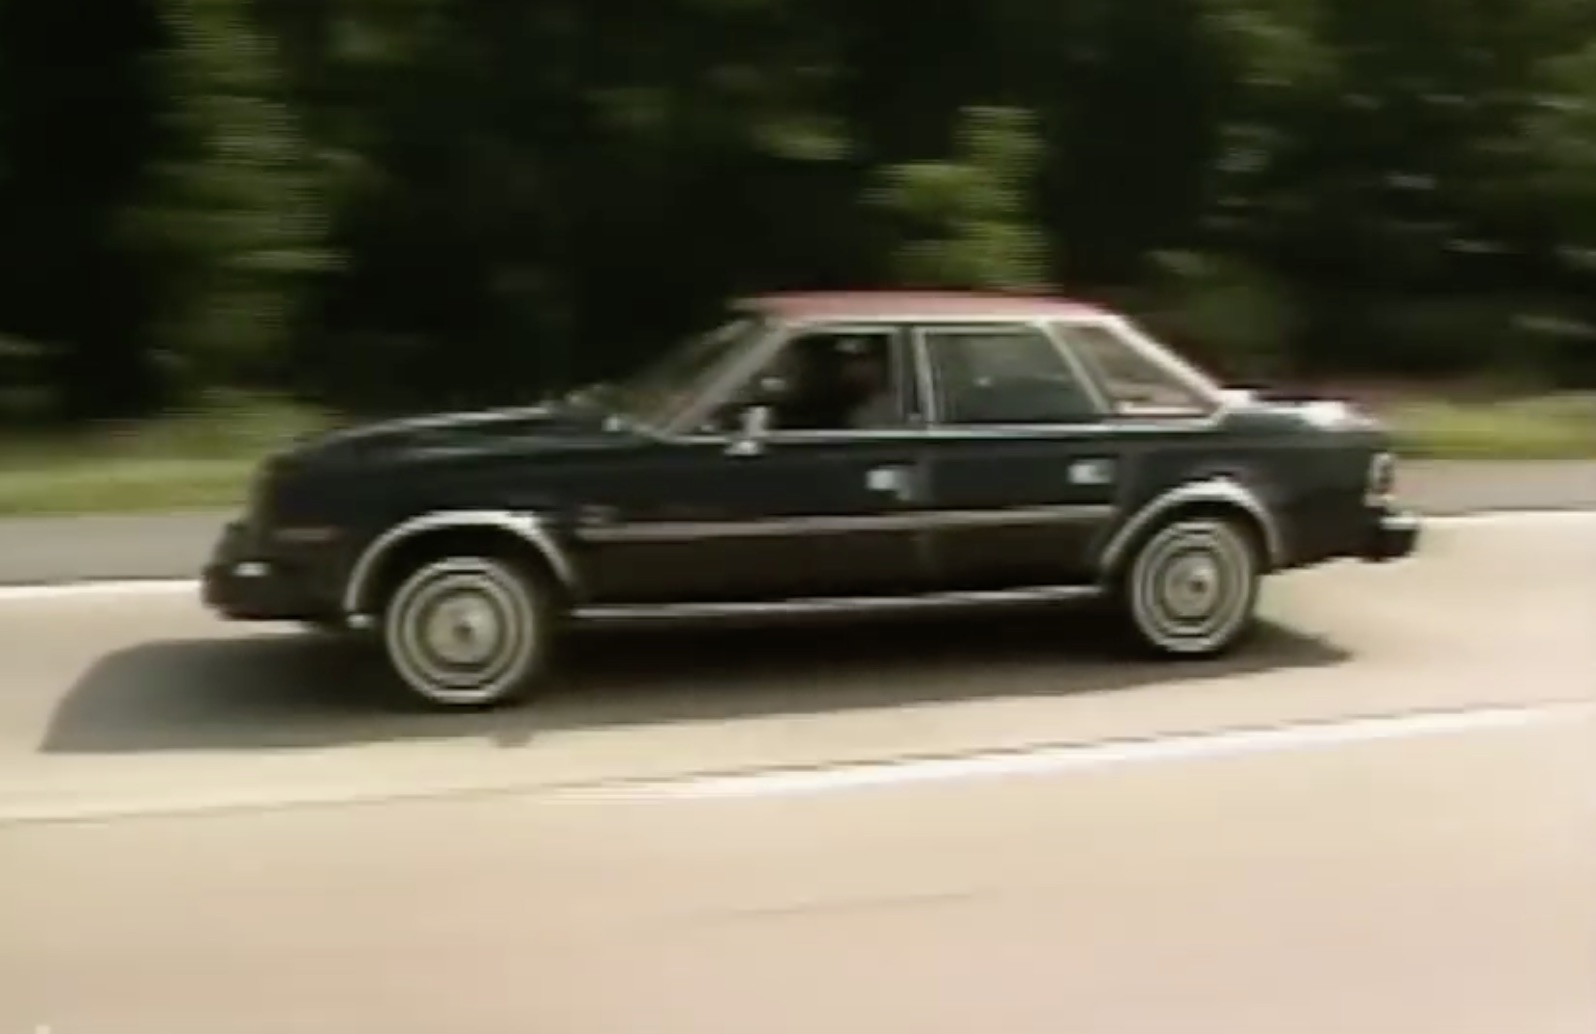 BangShift.com Ma-laziest? The Review Of The 1983 AMC Concord ...